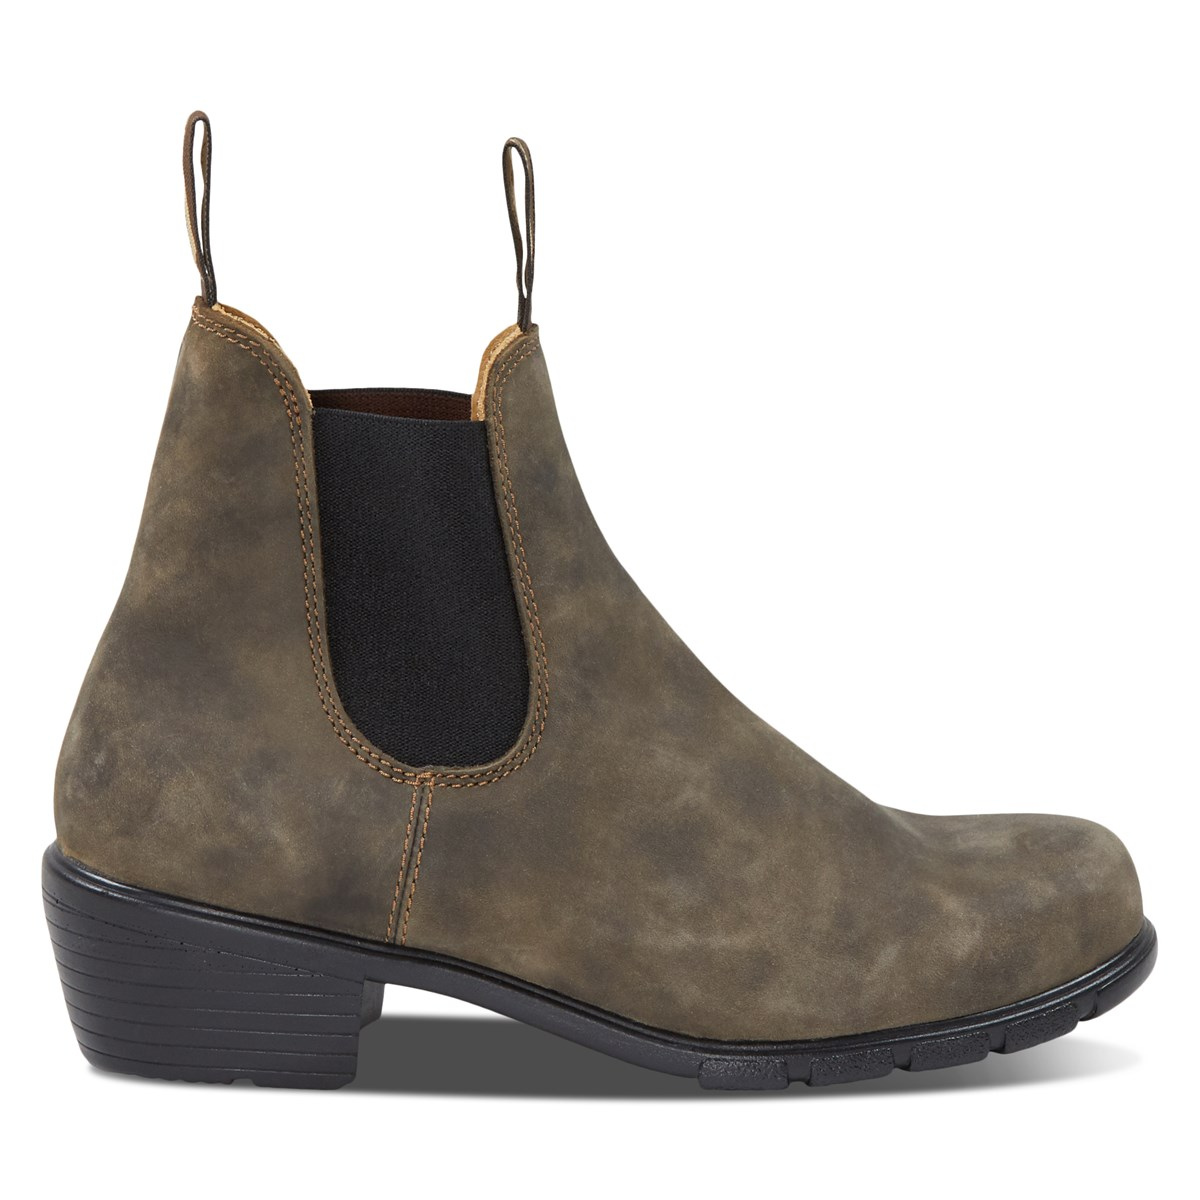 Women's 1677 Heeled Chelsea Boots in Rustic Brown